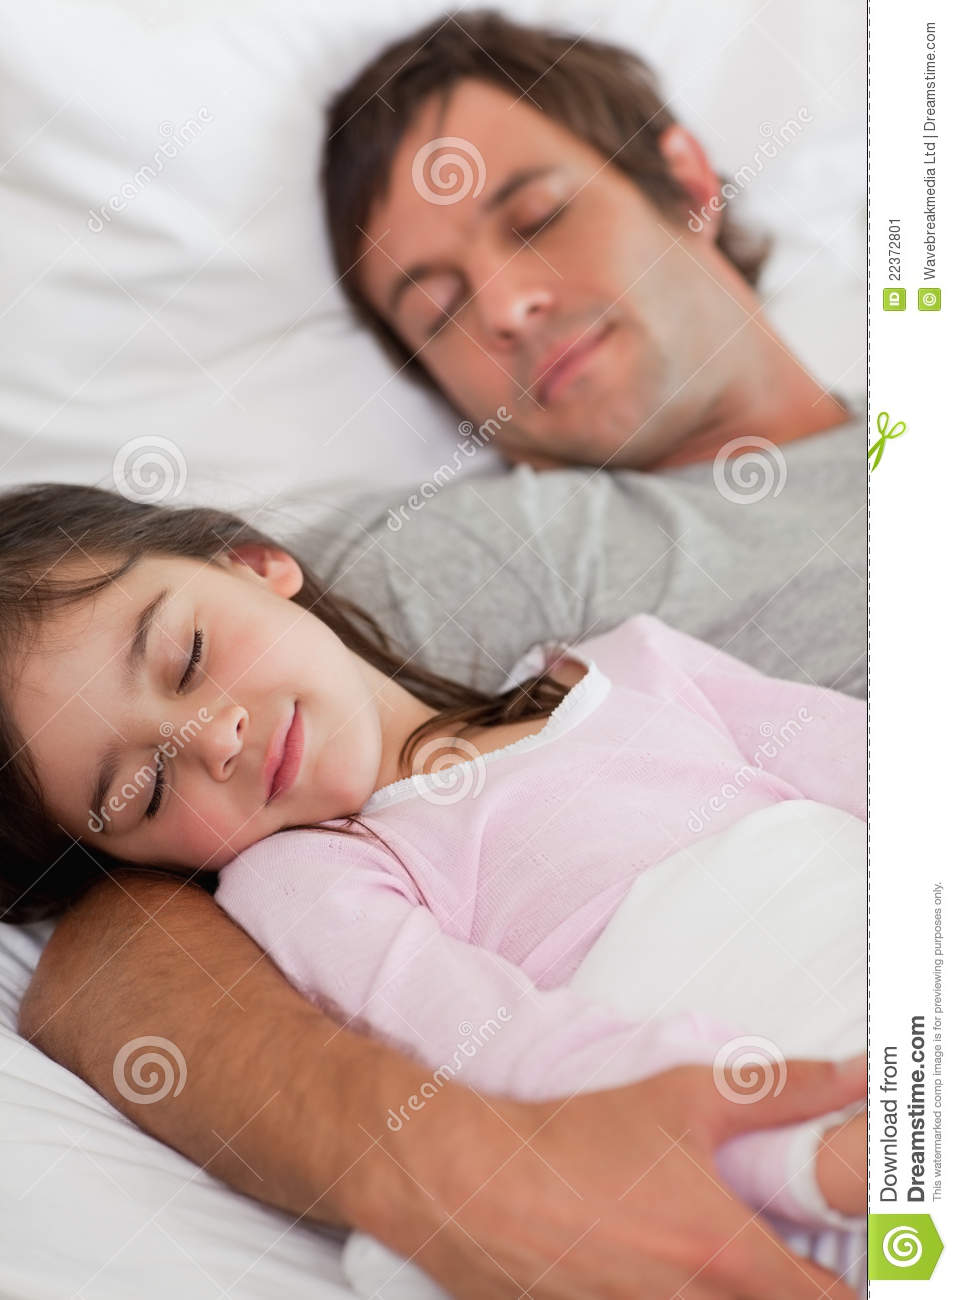 Daddy fucks sleeping daughter